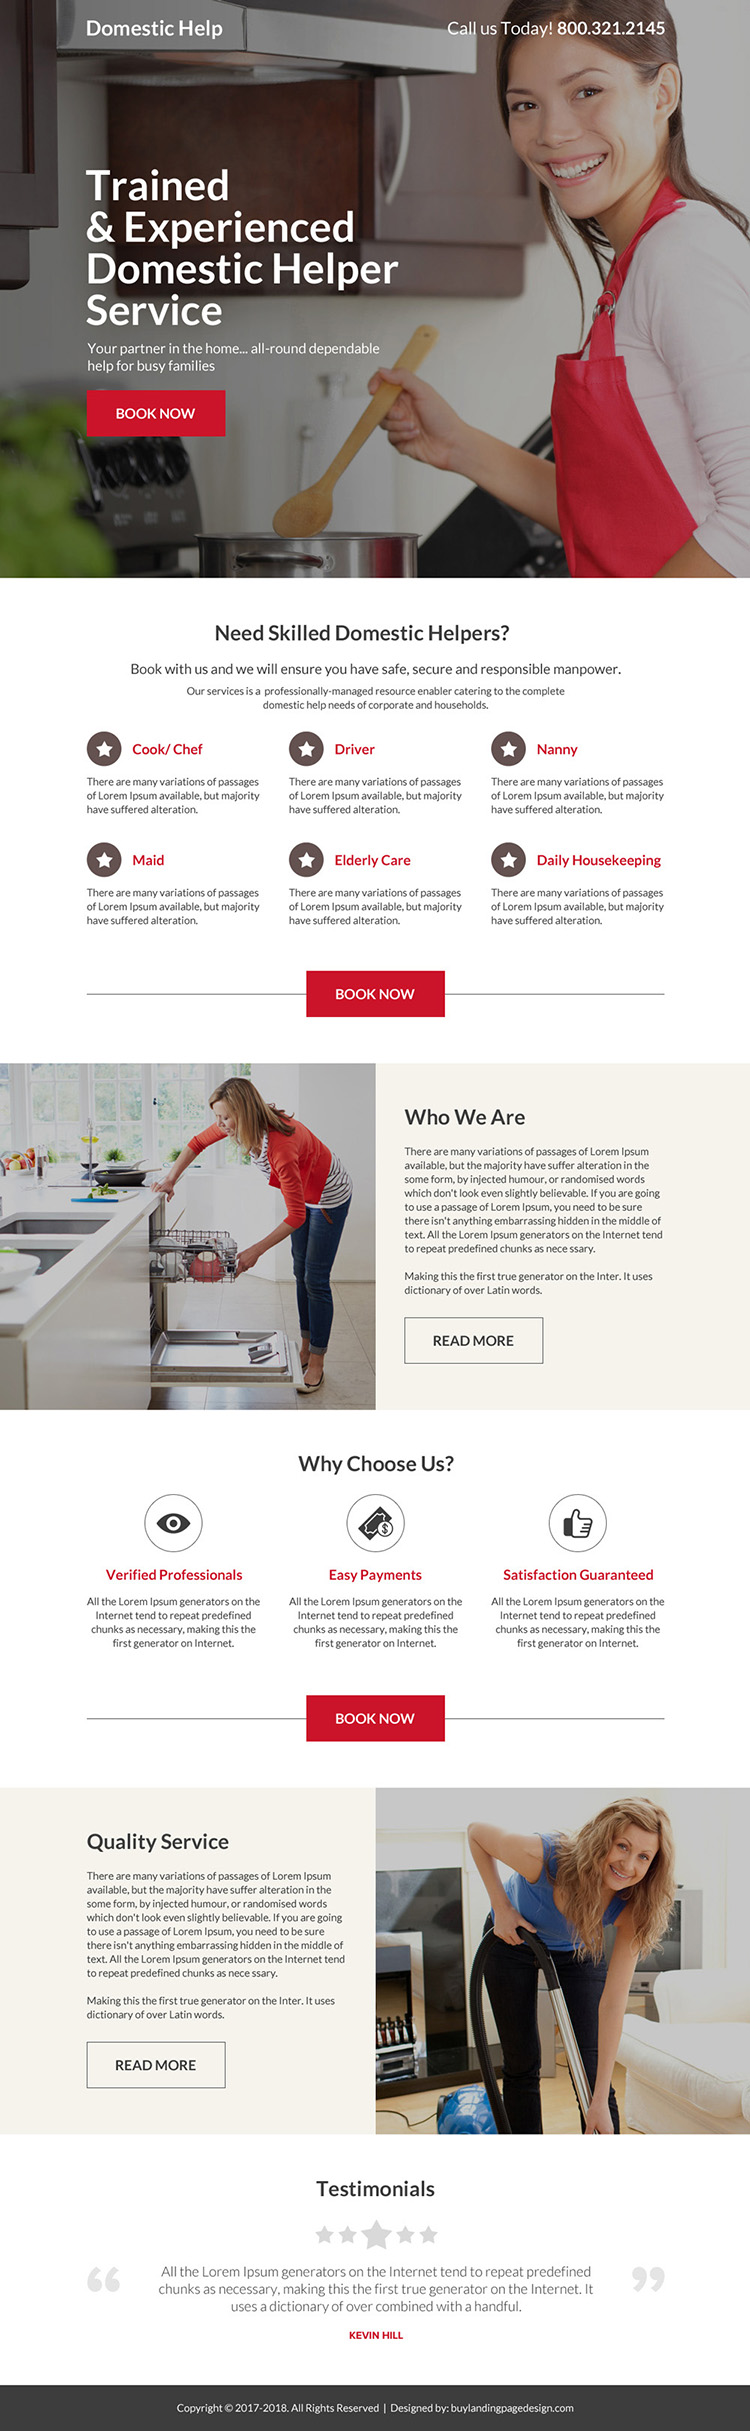 trained and experienced domestic help service responsive landing page design